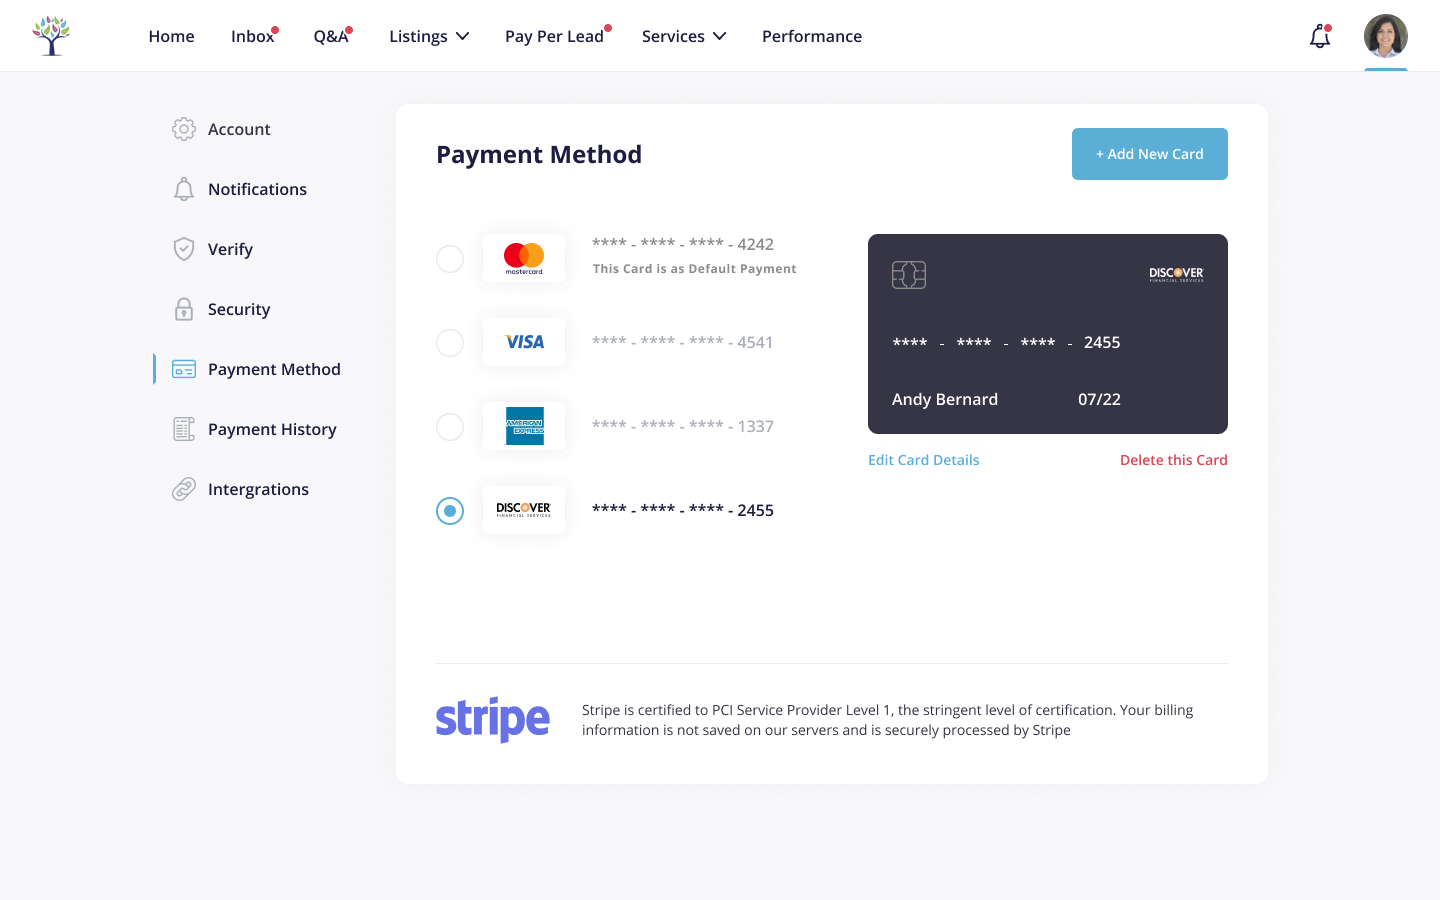 Dashboard - Payment Method